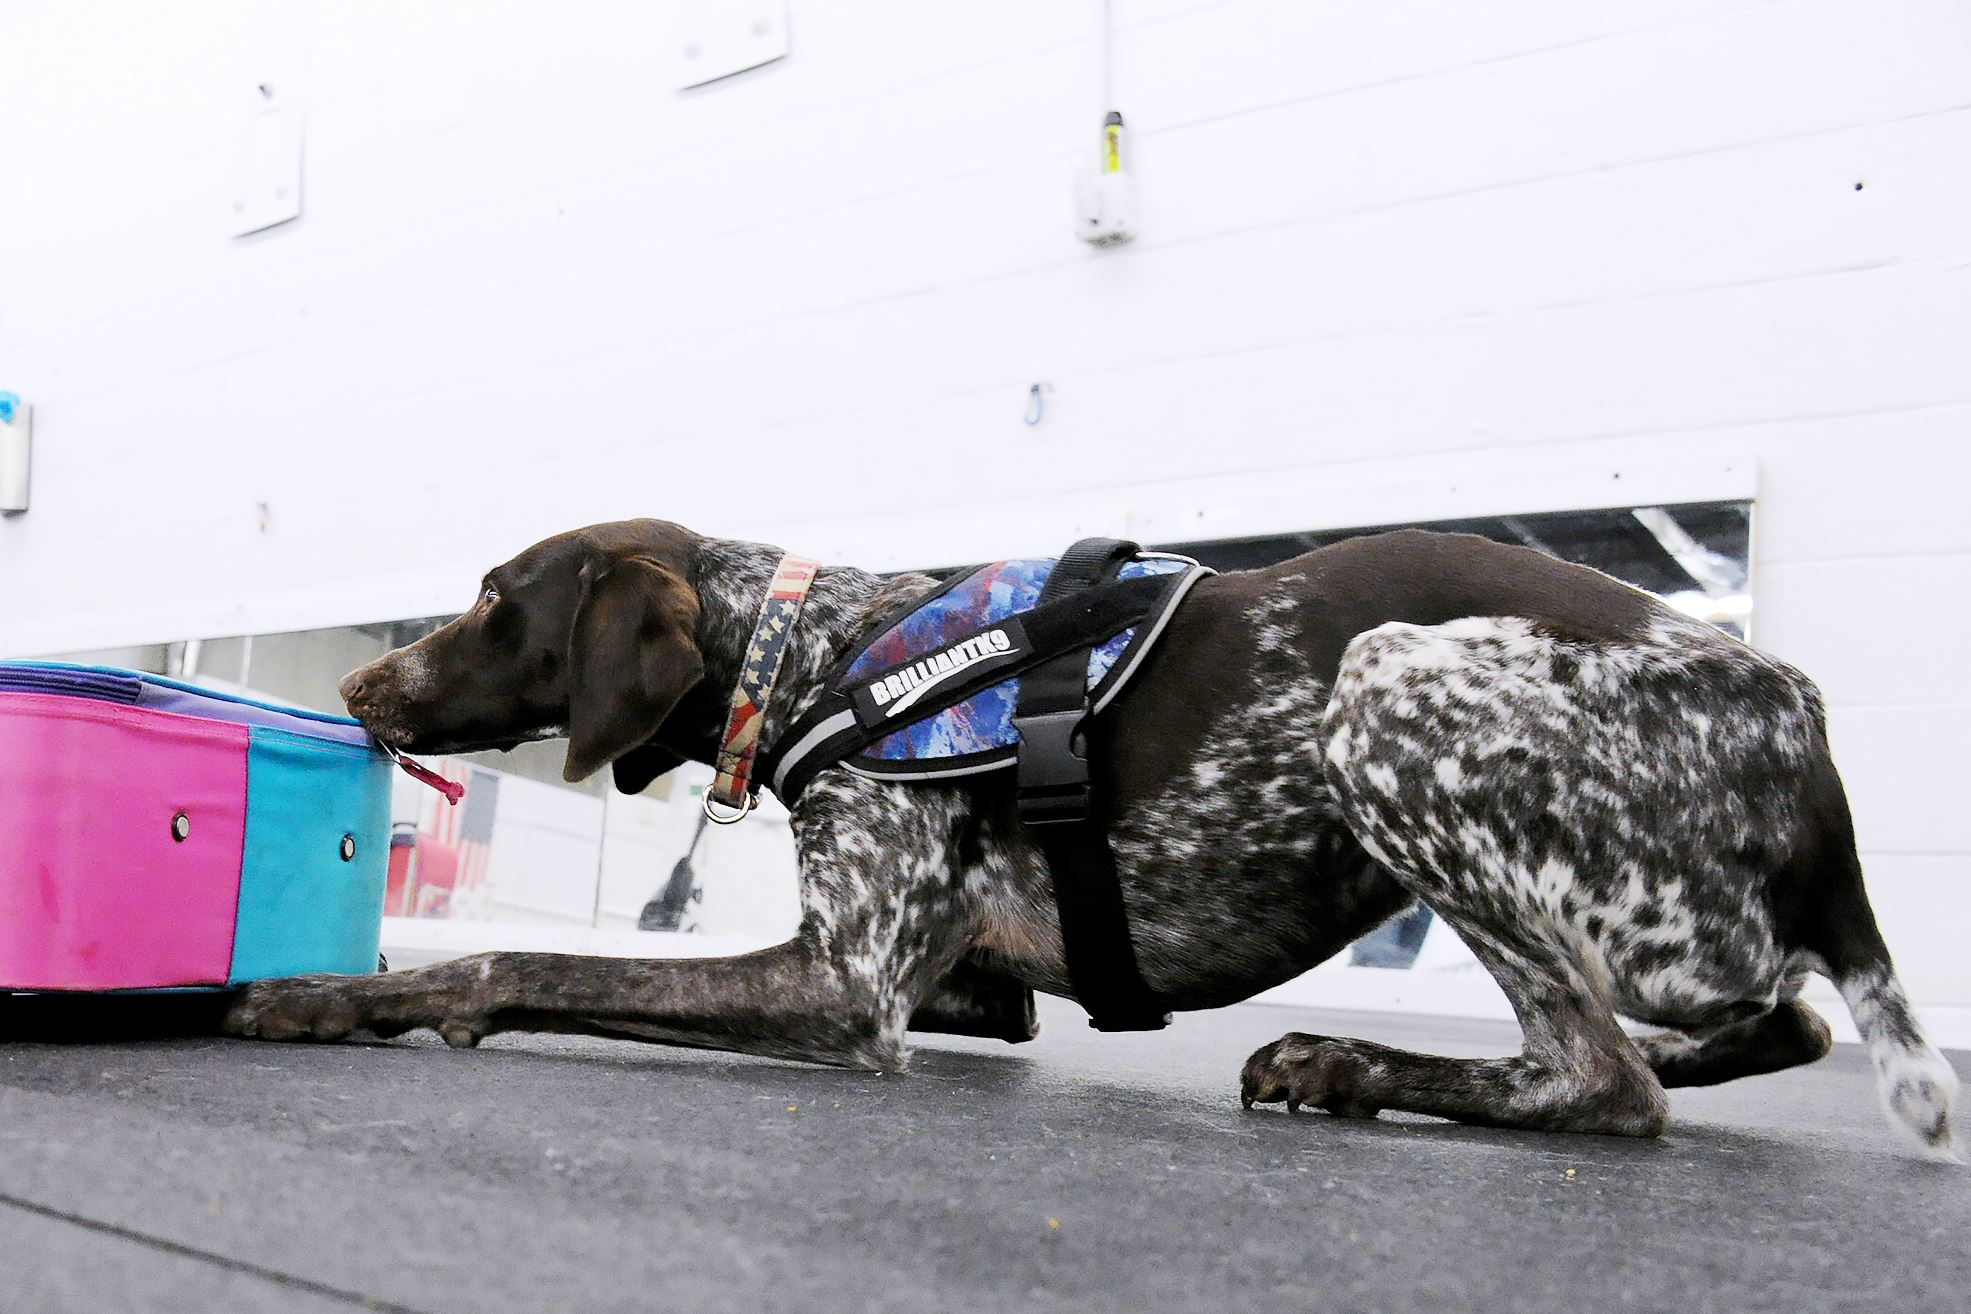 20170317lf-Dog04-3 Temperence, a 3-year-old German short-haired pointer, finds one of the hidden objects in a suitcase.